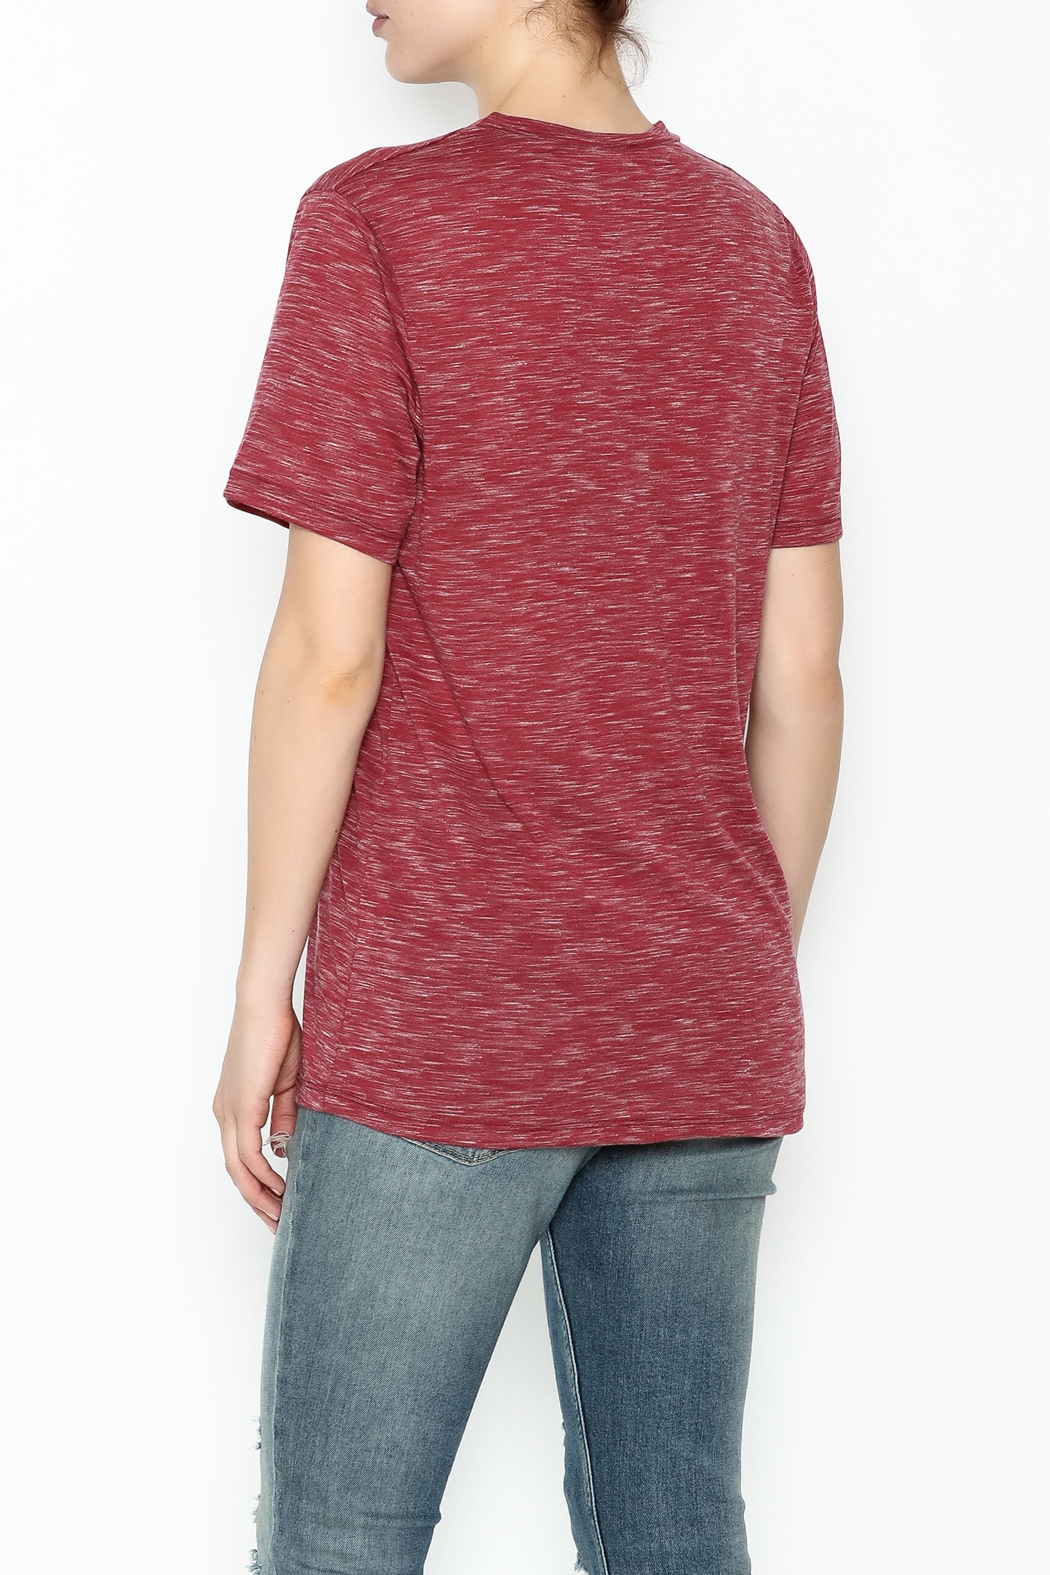 Daisey Ray Merlot Graphic Tee - Back Cropped Image